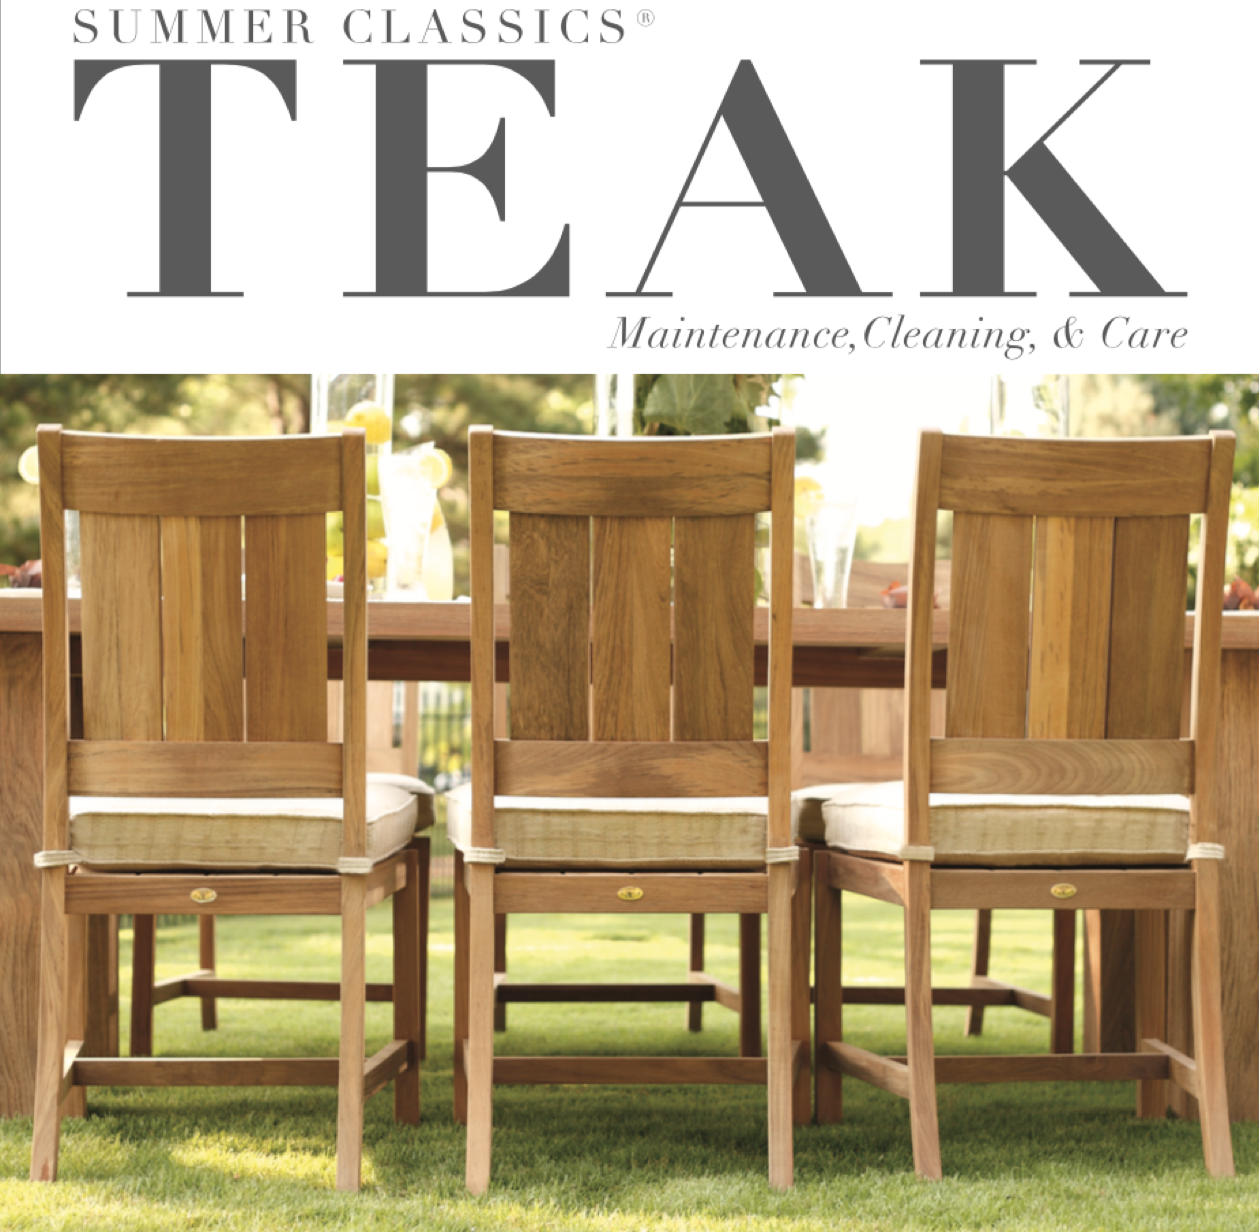 Summer Classics Teak Is Made Of The Highest Quality Slow Growth Plantation  Raised Teak. Teak